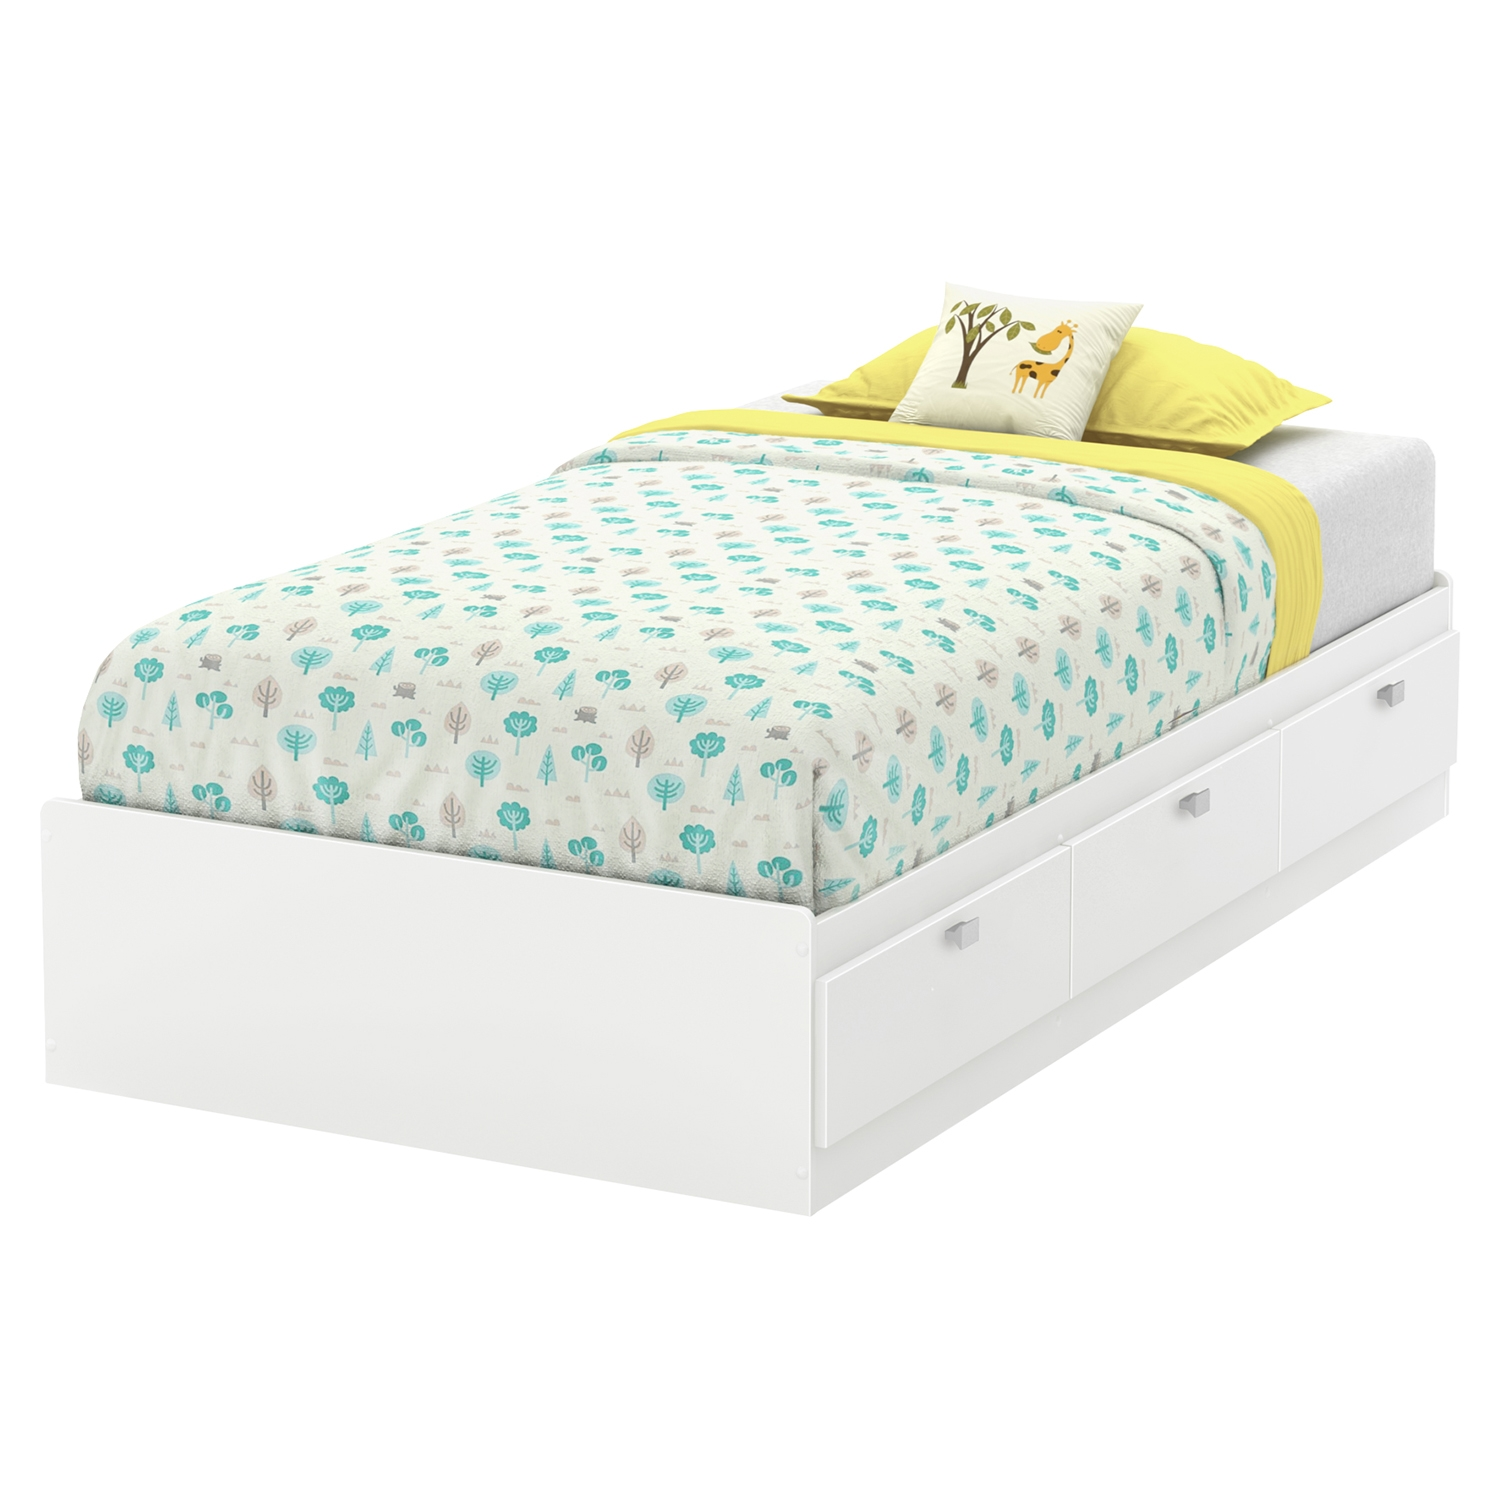 Karma Twin Mates Bed - 3 Drawers, Pure White - SS-9002C1